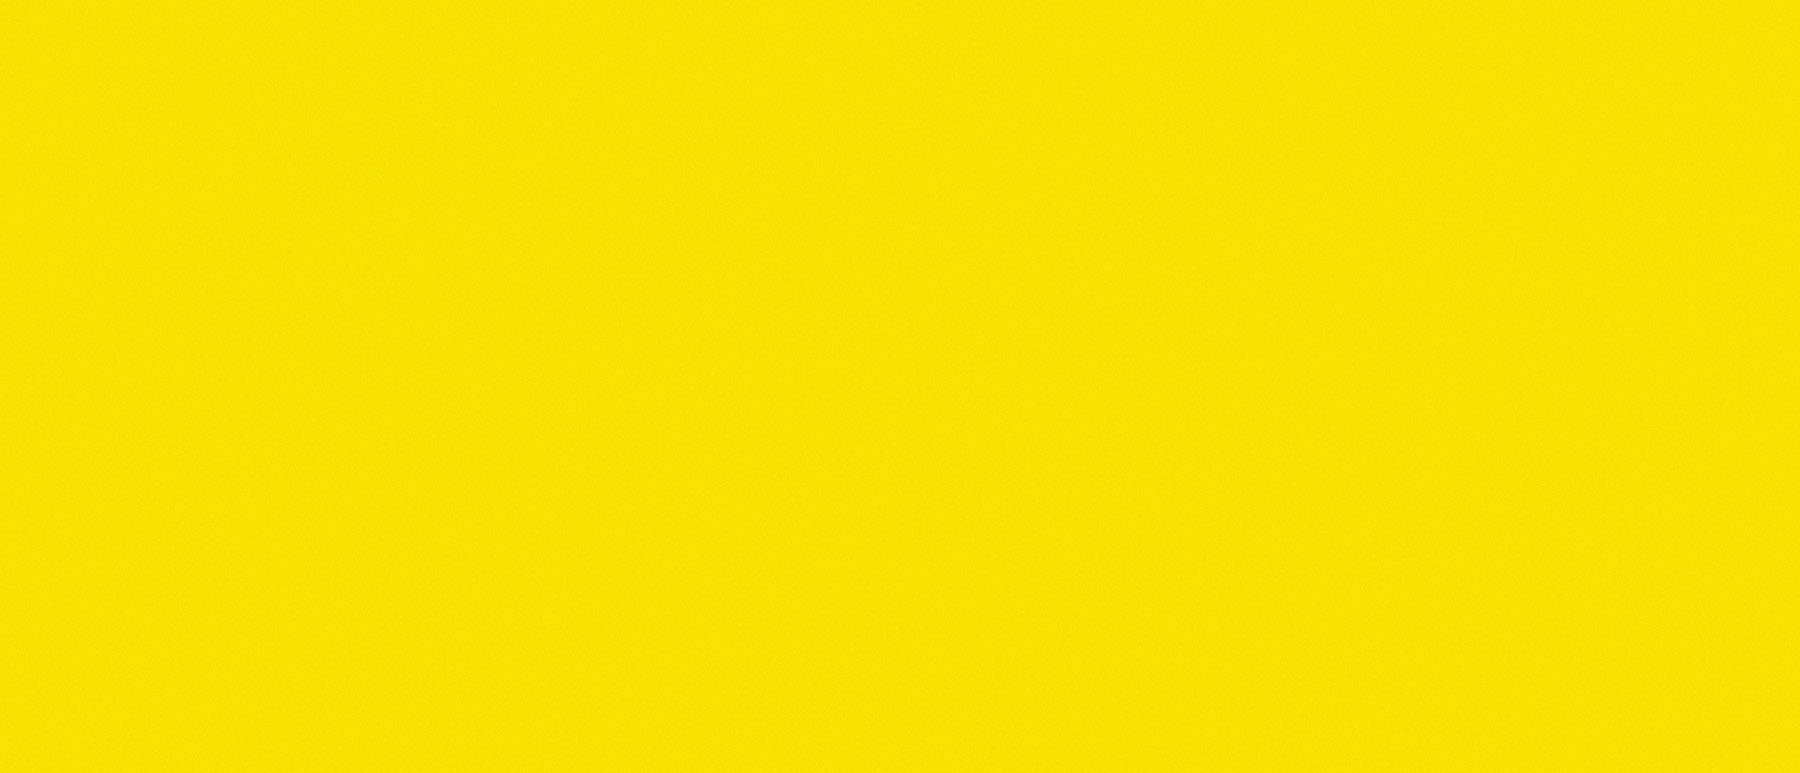 Yellow Background Picture